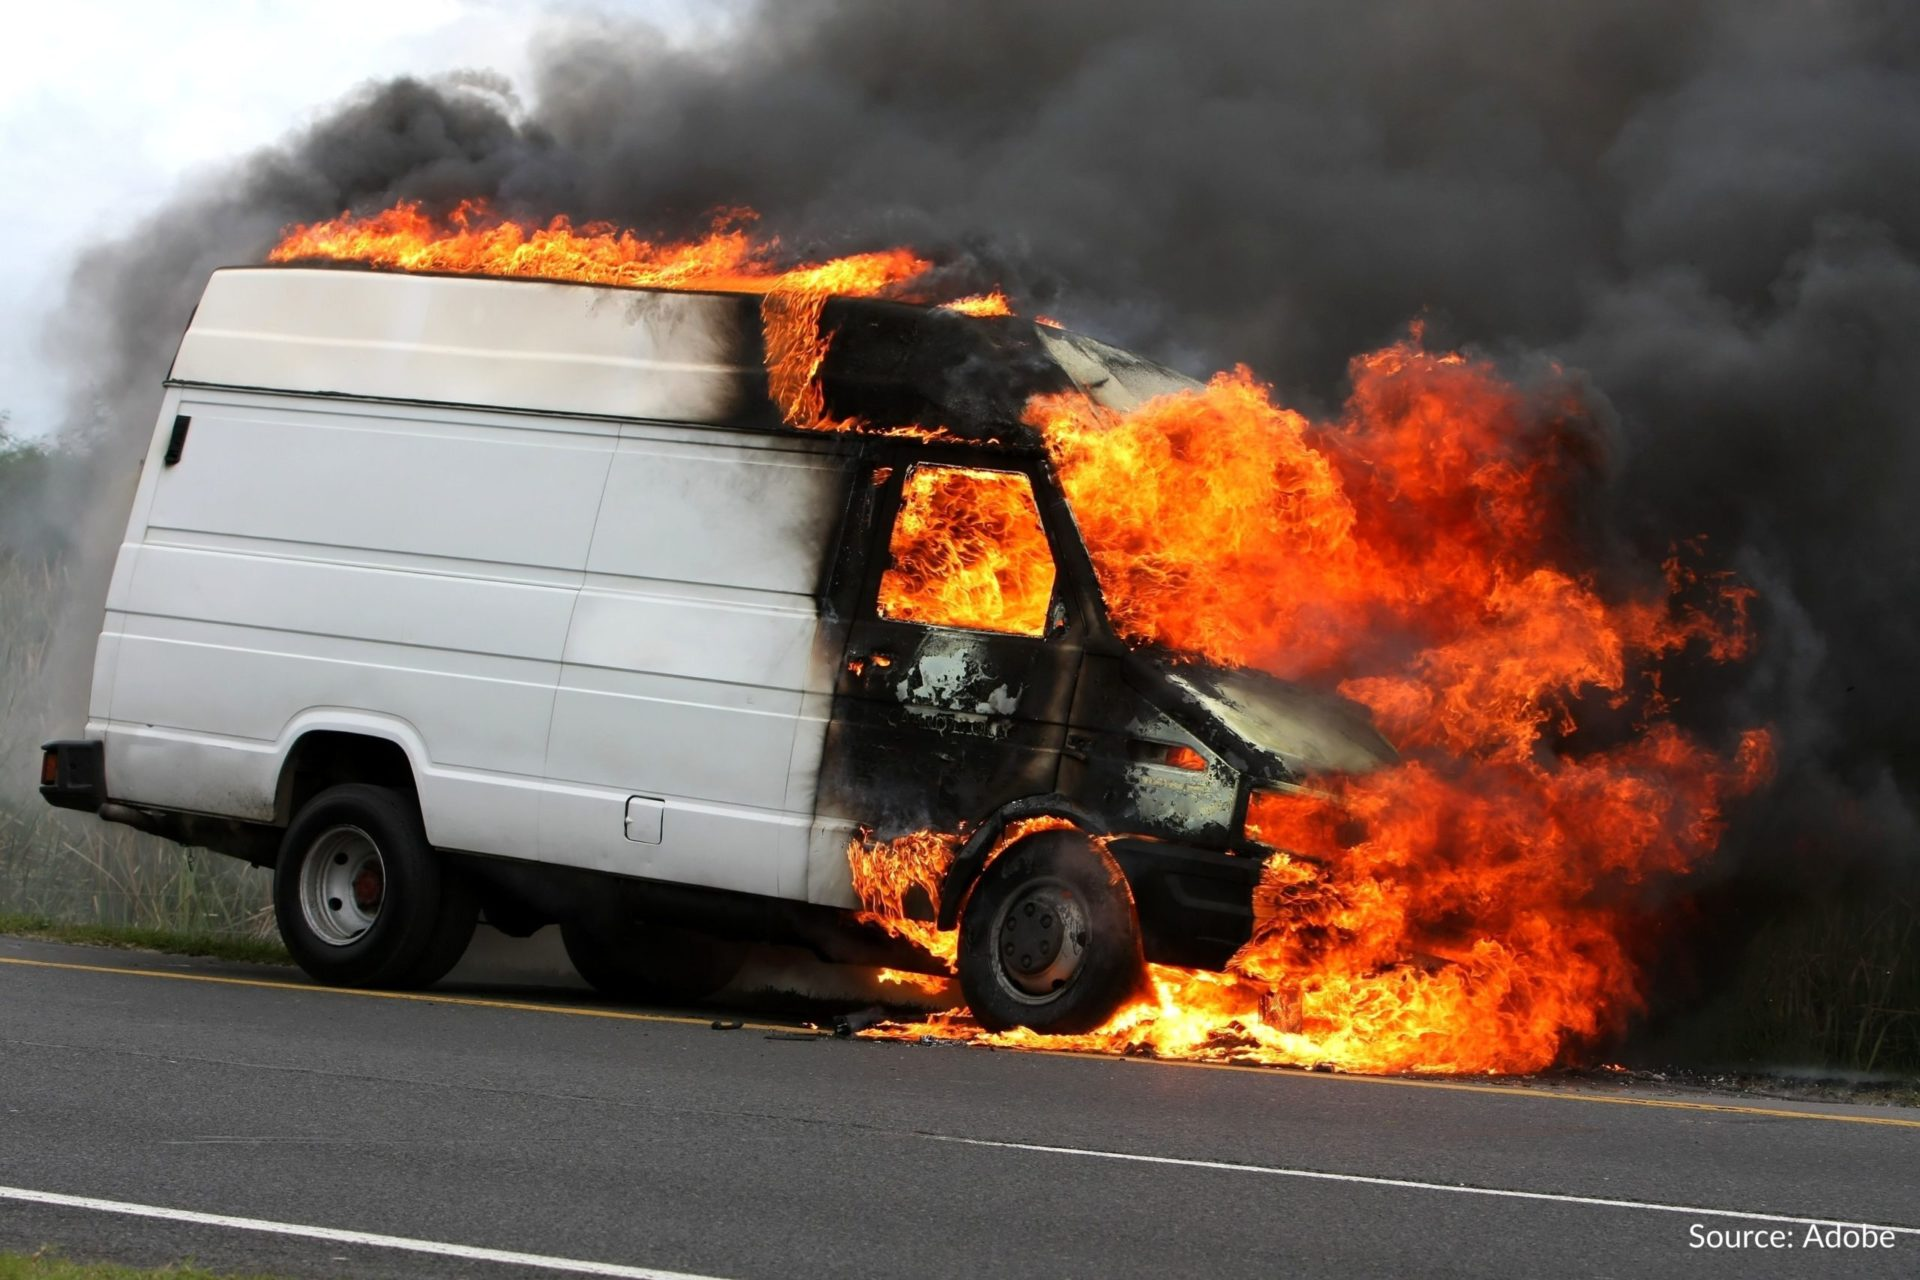 A fire consumes the front portion and roof of a van.